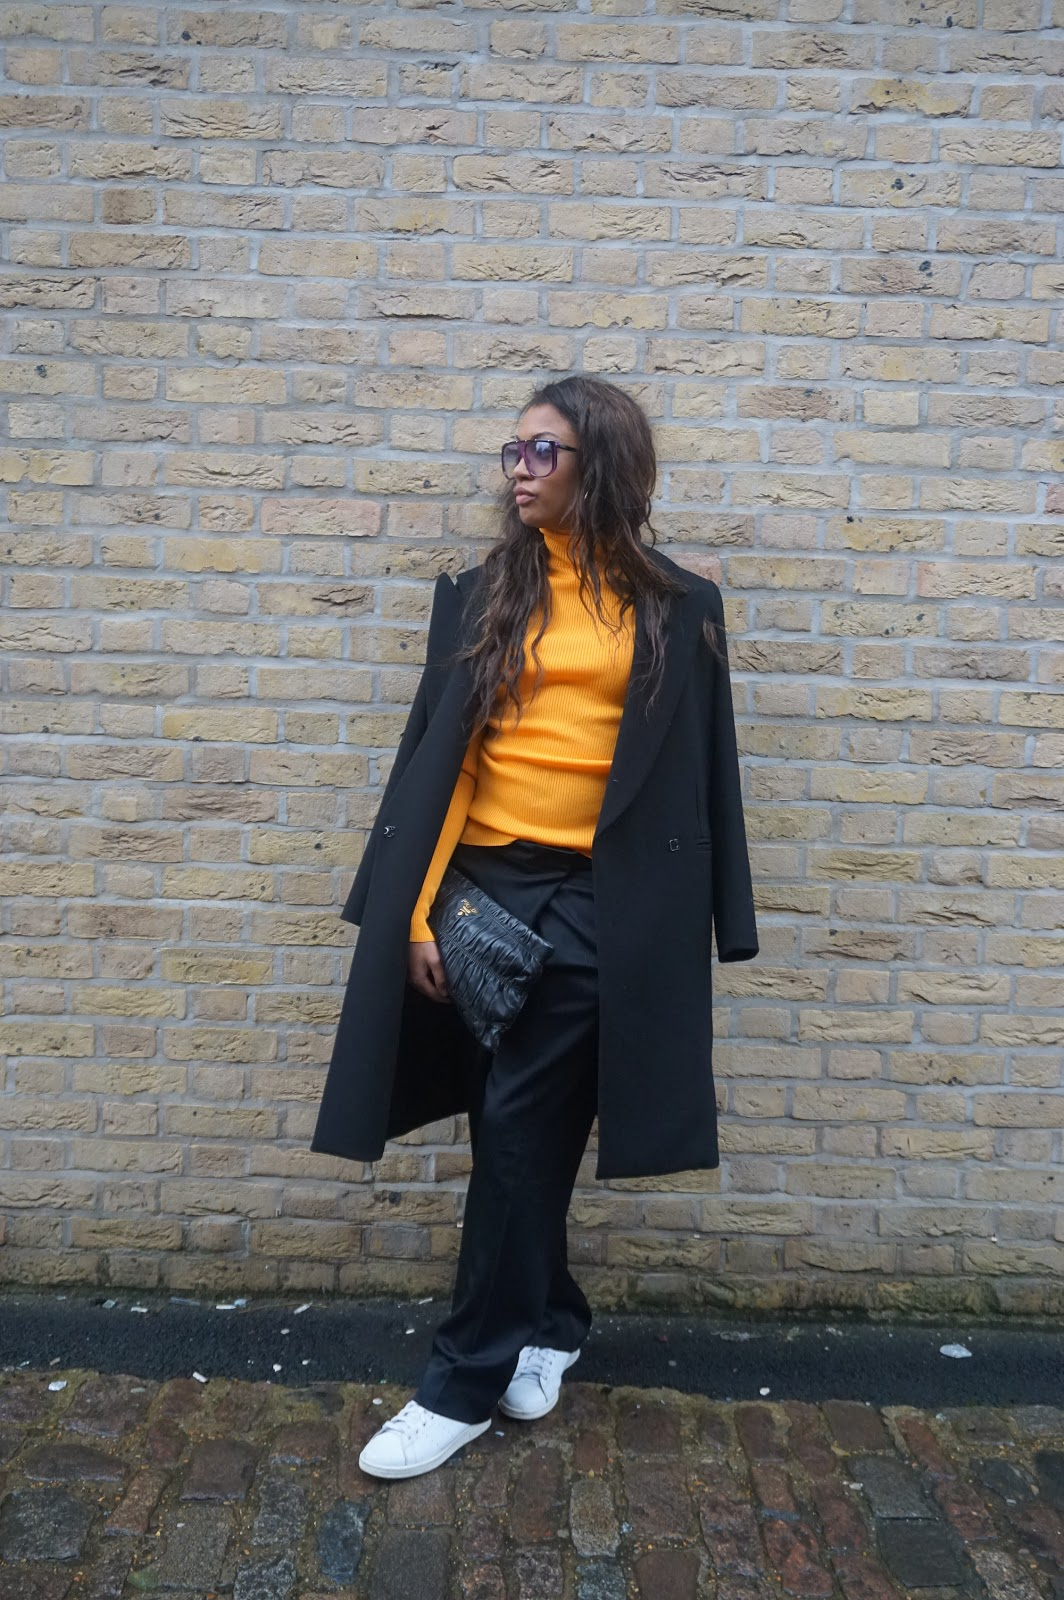 Streetstyle: Victoria Beckham Everything